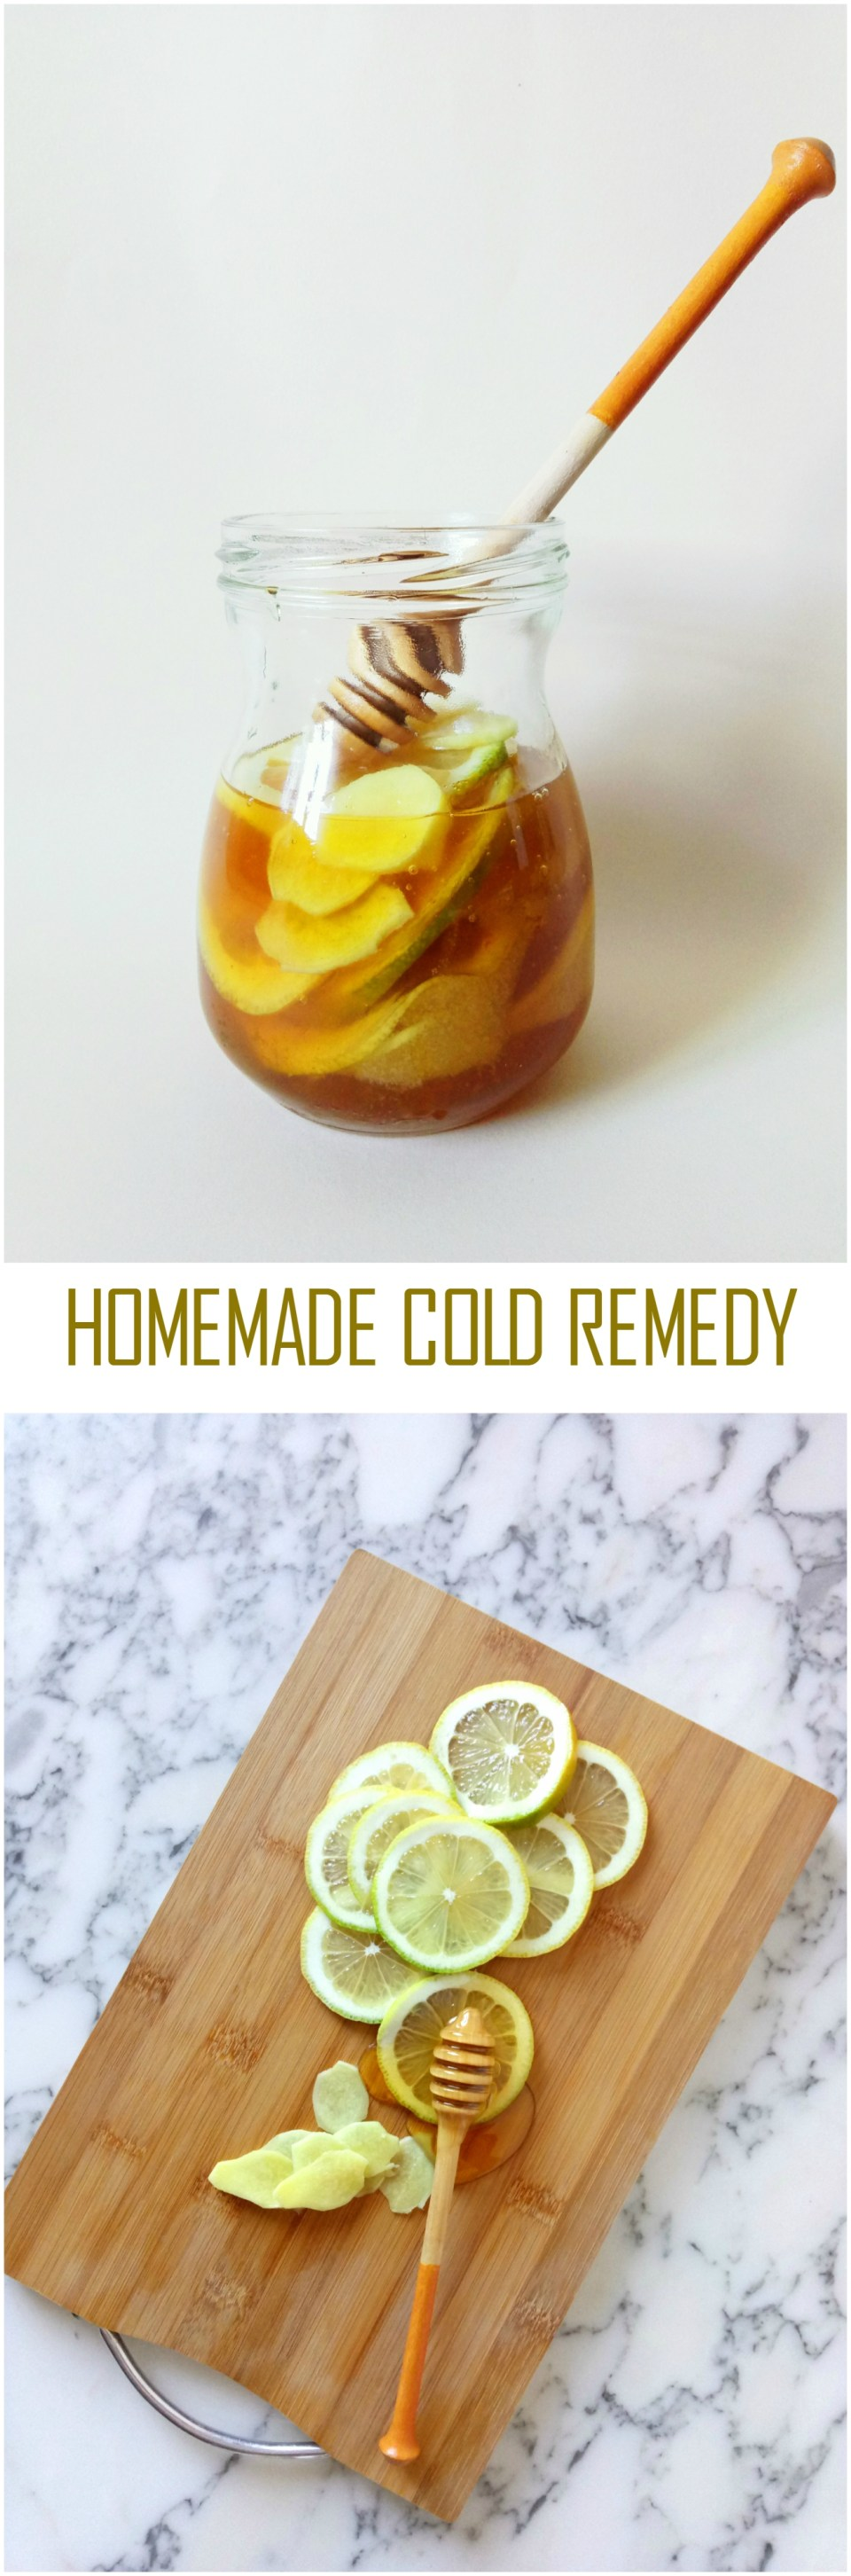 Best Homemade Remedy for Cold and Cough